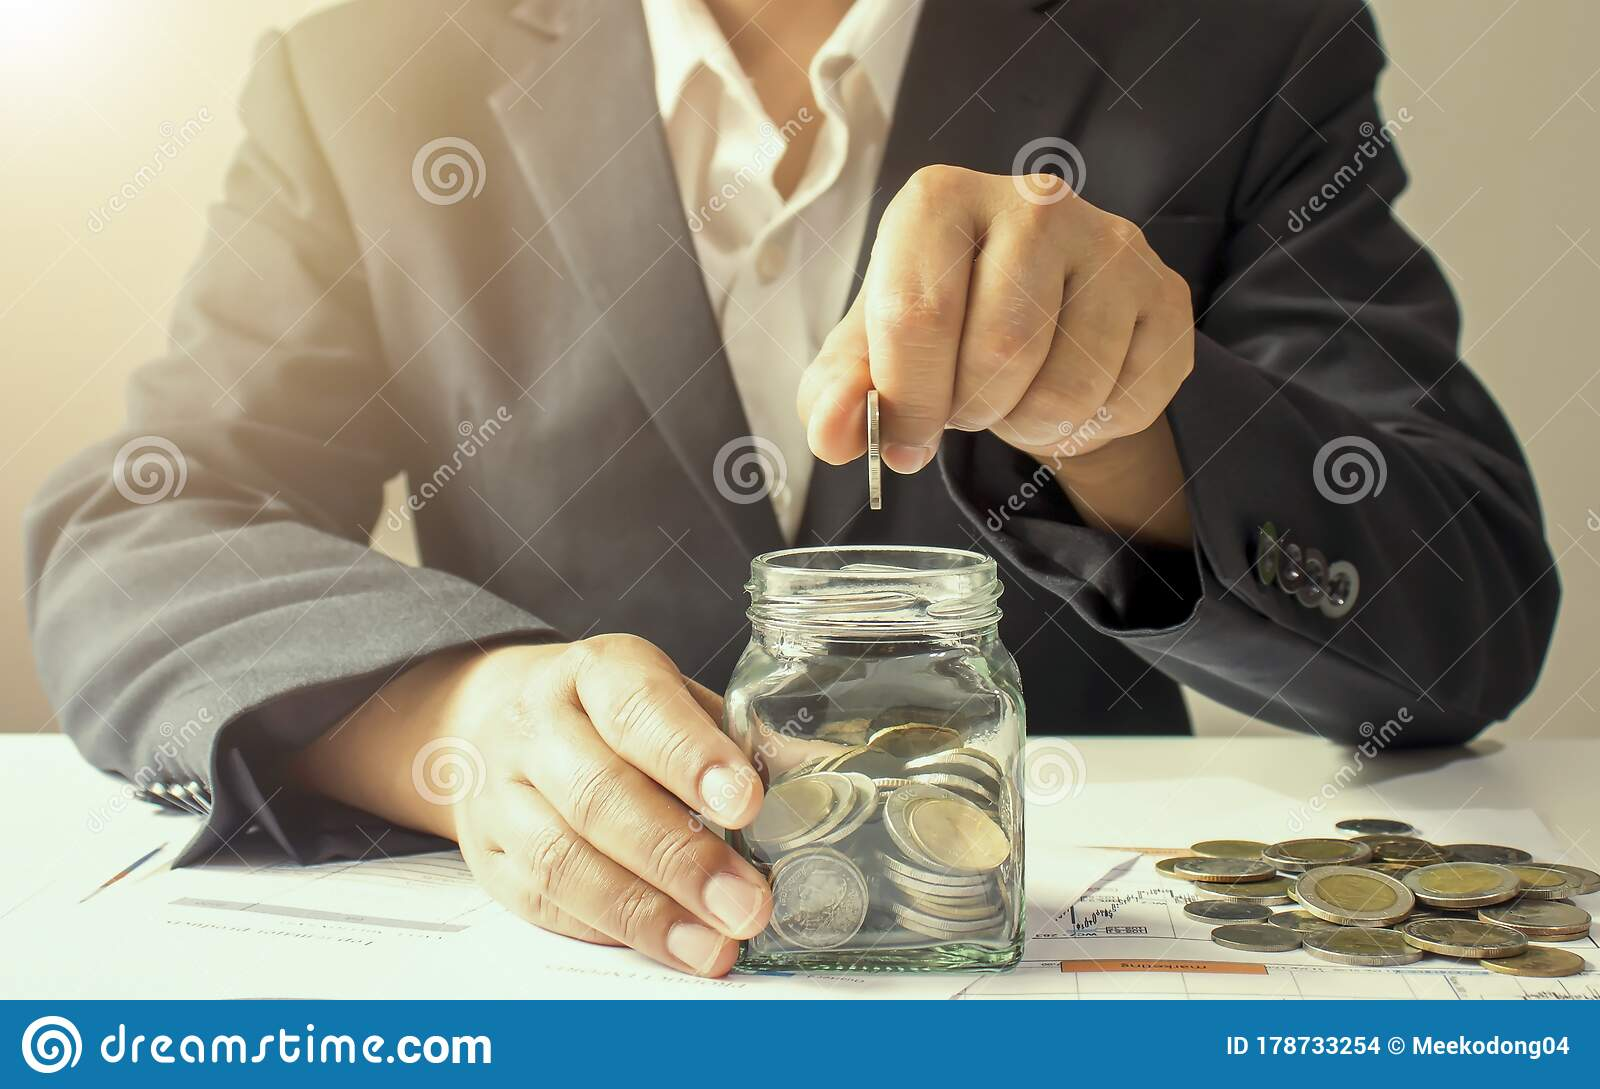 The Hands Of A Businesswoman Who Put Coins In A Jar To Save Money Stock Photo Image Of Growth Cash 178733254